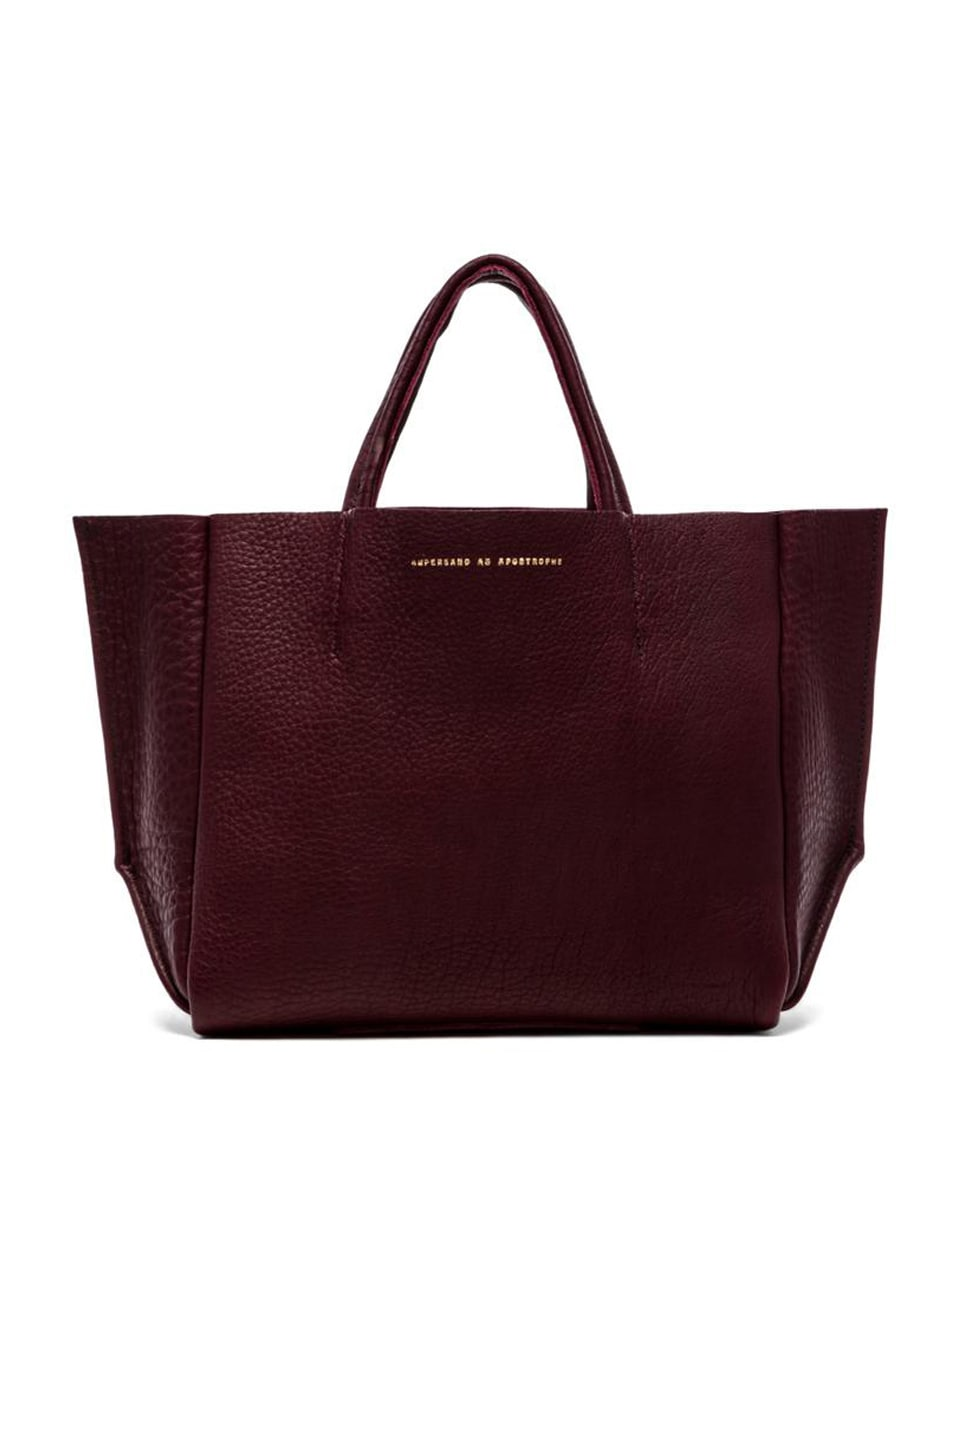 AMPERSAND AS APOSTROPHE Buffalo Half Tote in Oxblood